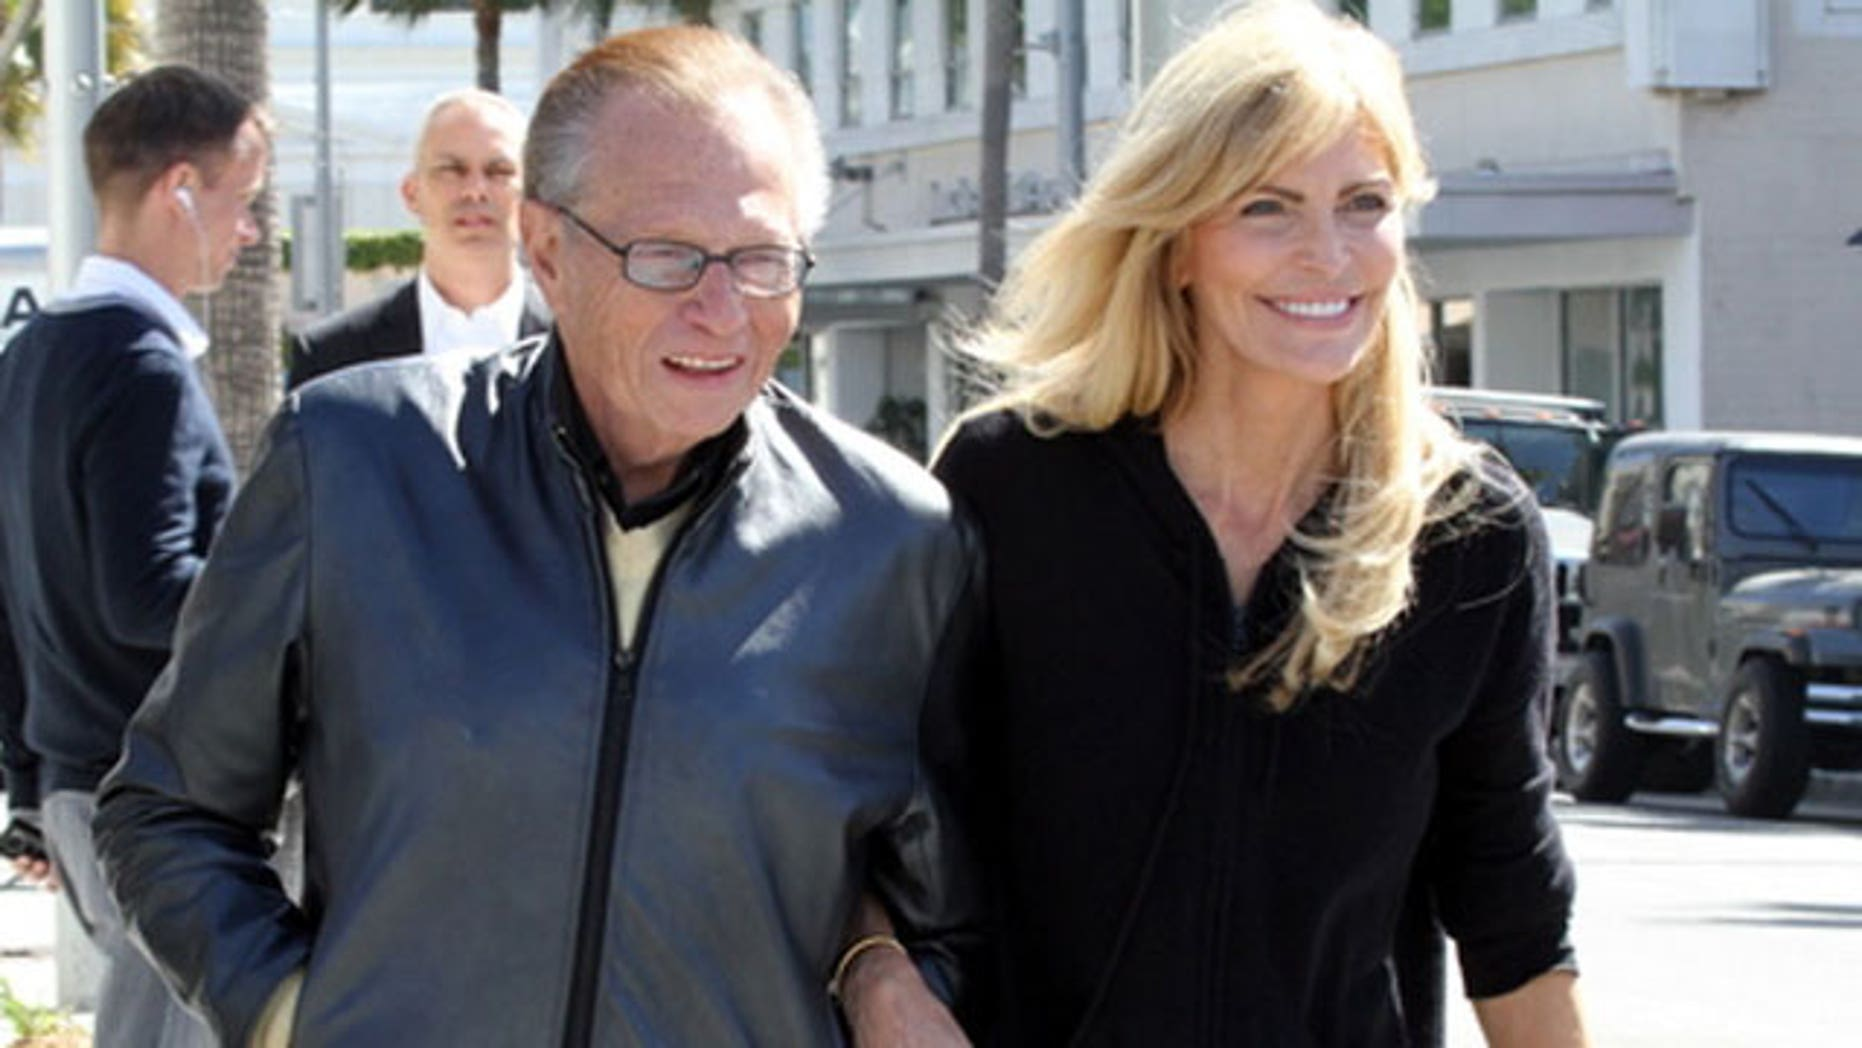 Larry King and wife Shawn Southwick on May 12, 2010. (X17online.com)